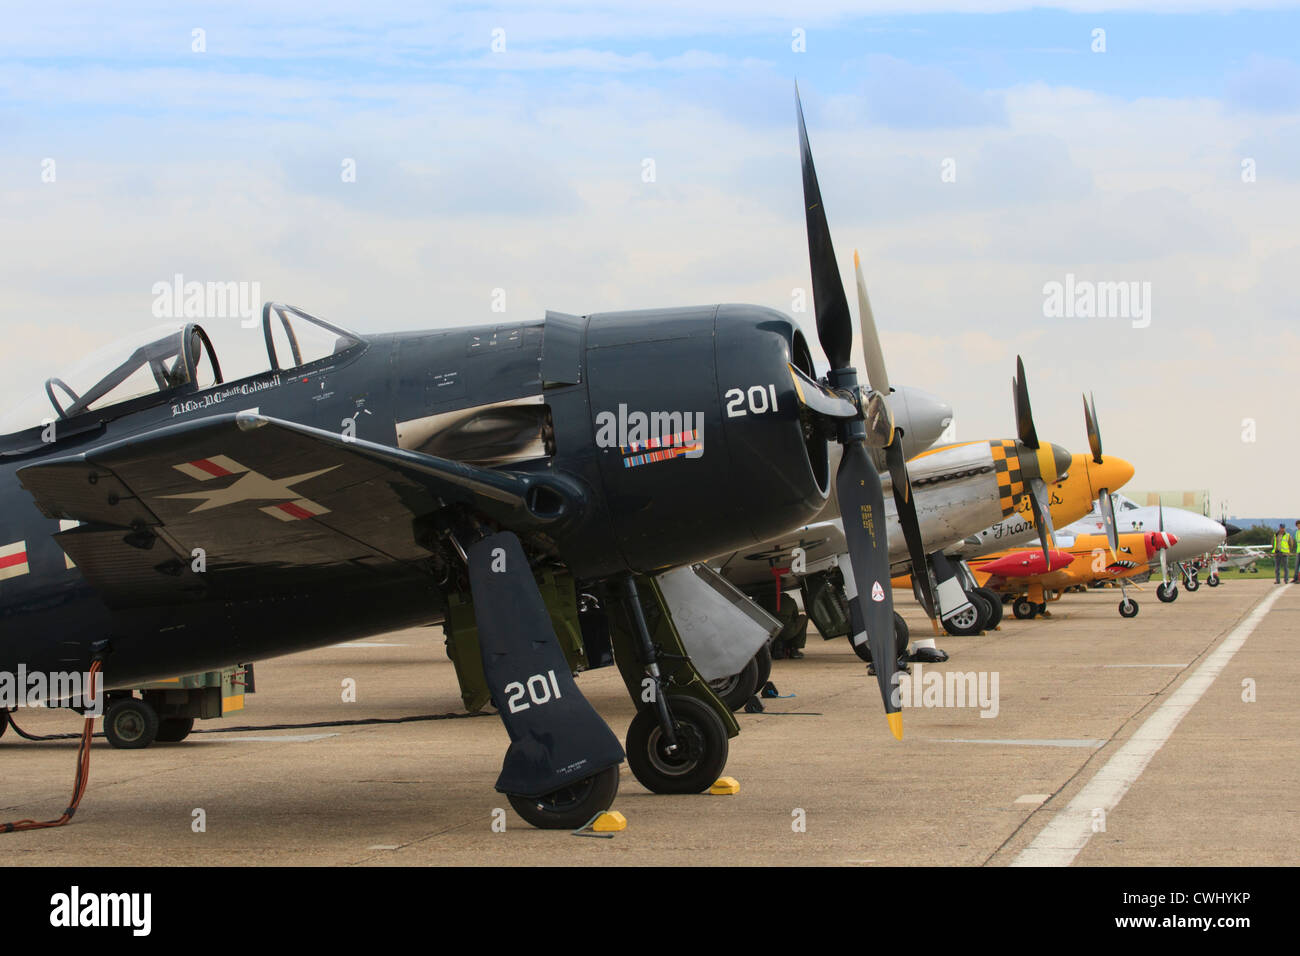 Aircraft lined up along the flight line at Duxford airshow - Stock Image